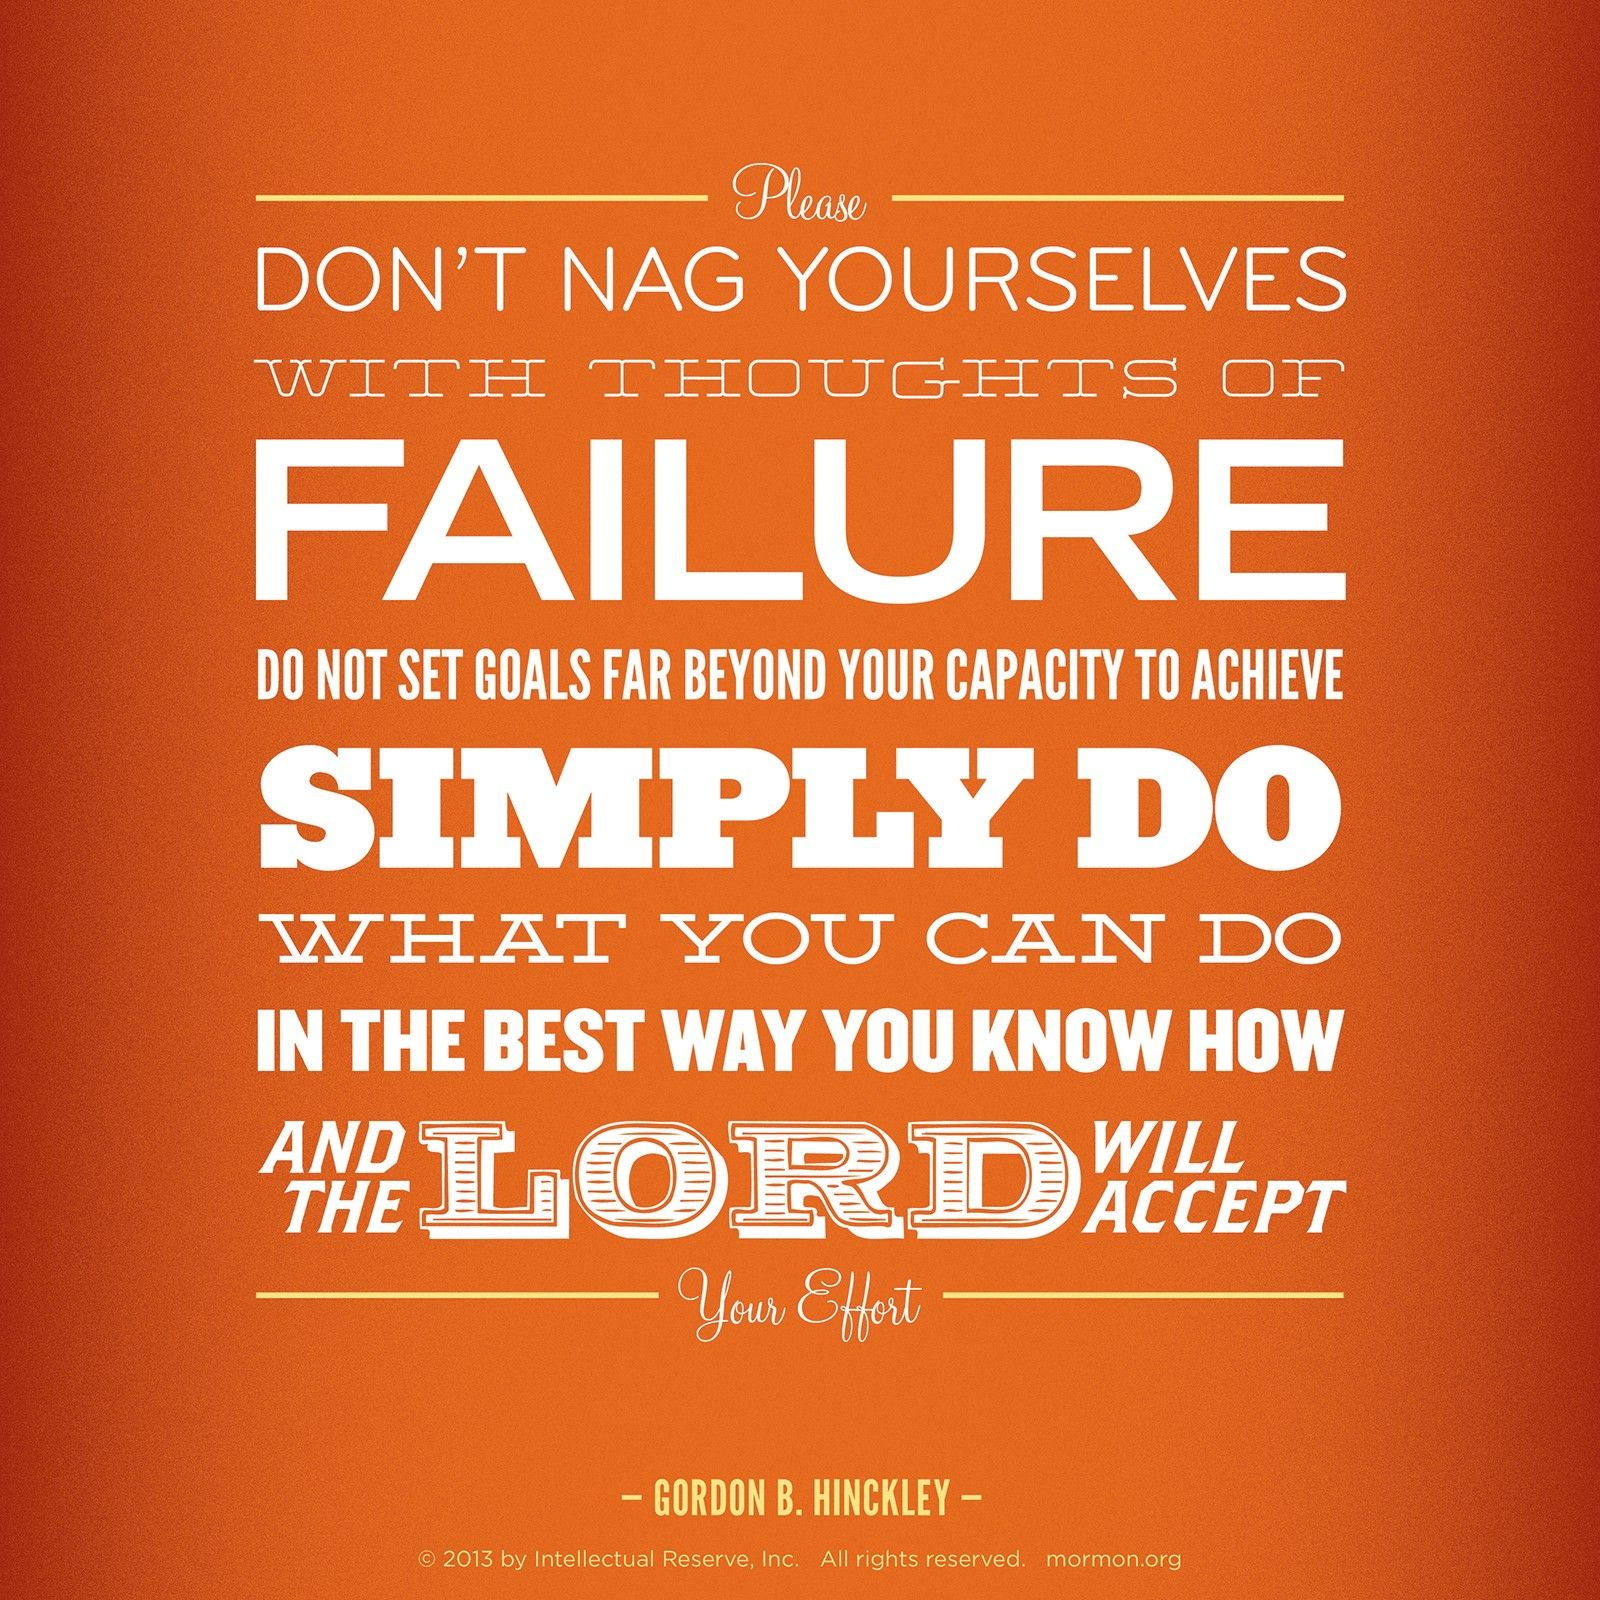 """""""Please don't nag yourselves with thoughts of failure. Do not set goals far beyond your capacity to achieve. Simply do what you can do, in the best way you know how, and the Lord will accept your effort.""""—President Gordon B. Hinckley, """"Rise to the Stature of the Divine within You"""""""